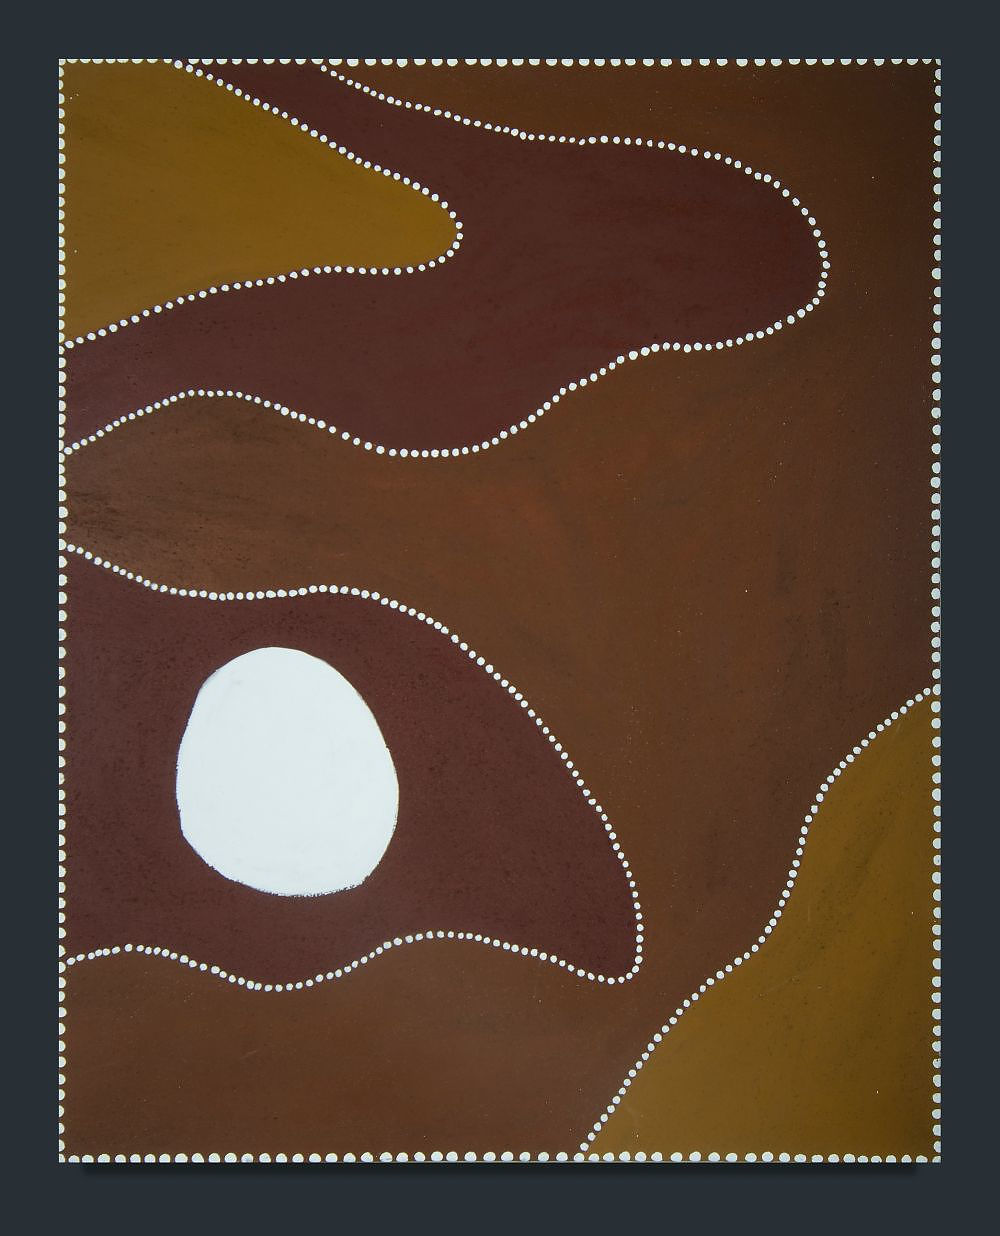 'COX, Katie (b.1958) Untitled, 2004. Signed verso. Inscribed Warmun Art Centre cat WAC720/04 Ochre on Canvas'